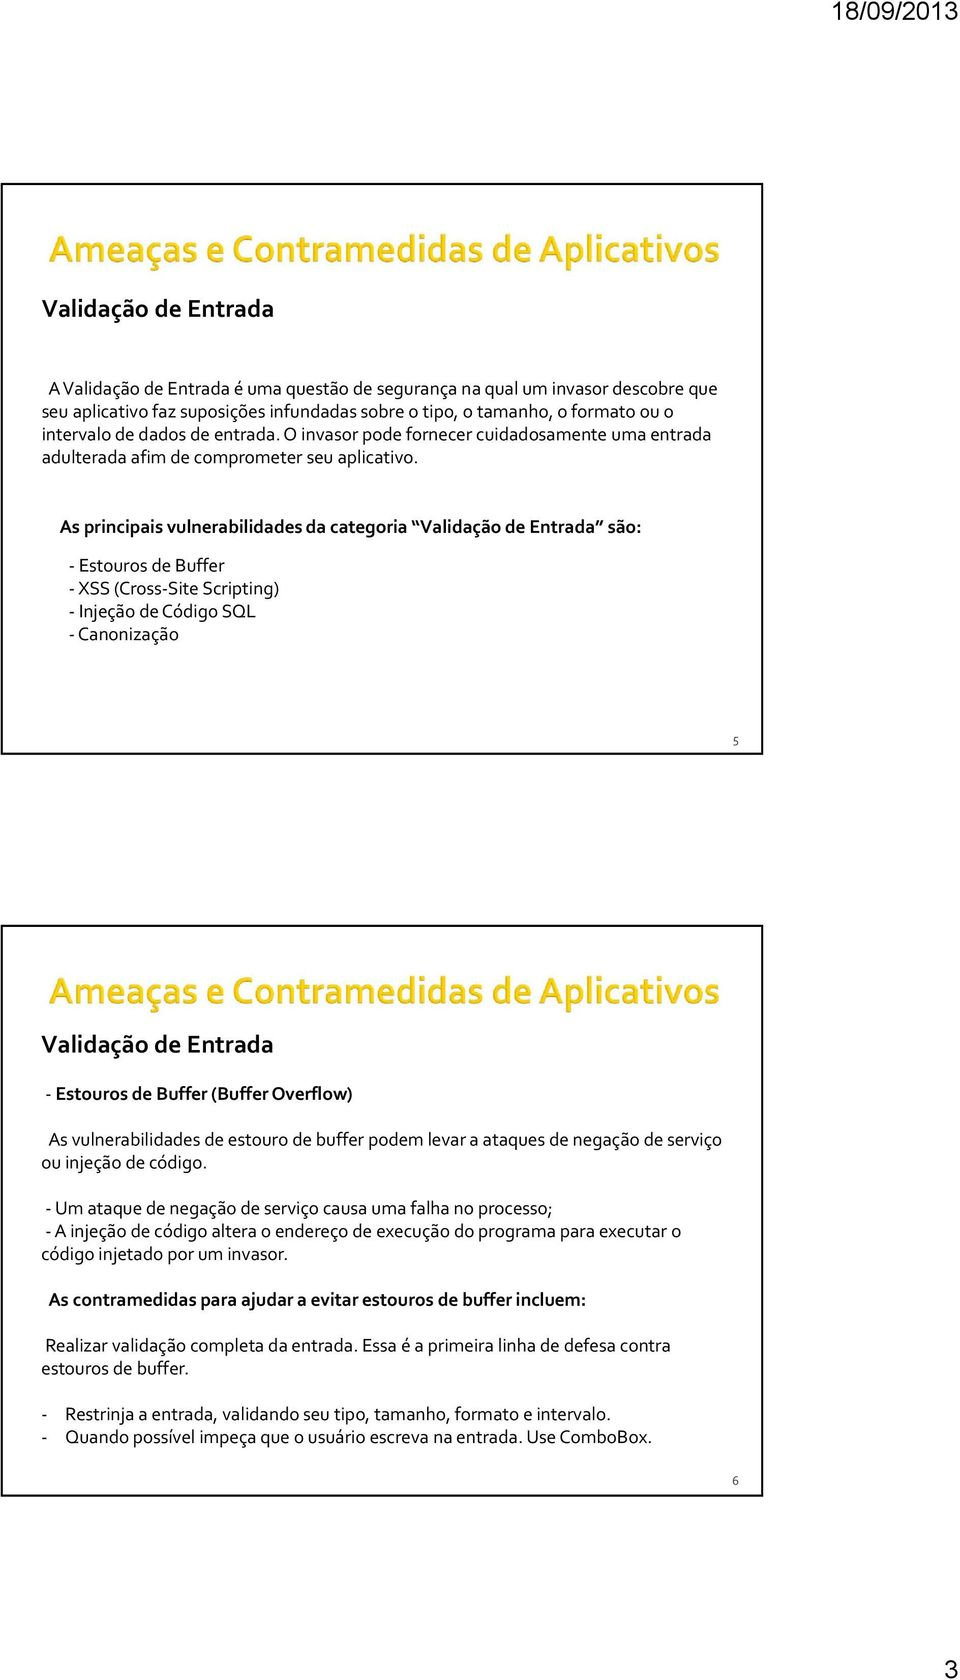 As principais vulnerabilidades da categoria são: - Estouros de Buffer - XSS (Cross-Site Scripting) -Injeção de Código SQL - Canonização 5 - Estouros de Buffer (Buffer Overflow) As vulnerabilidades de